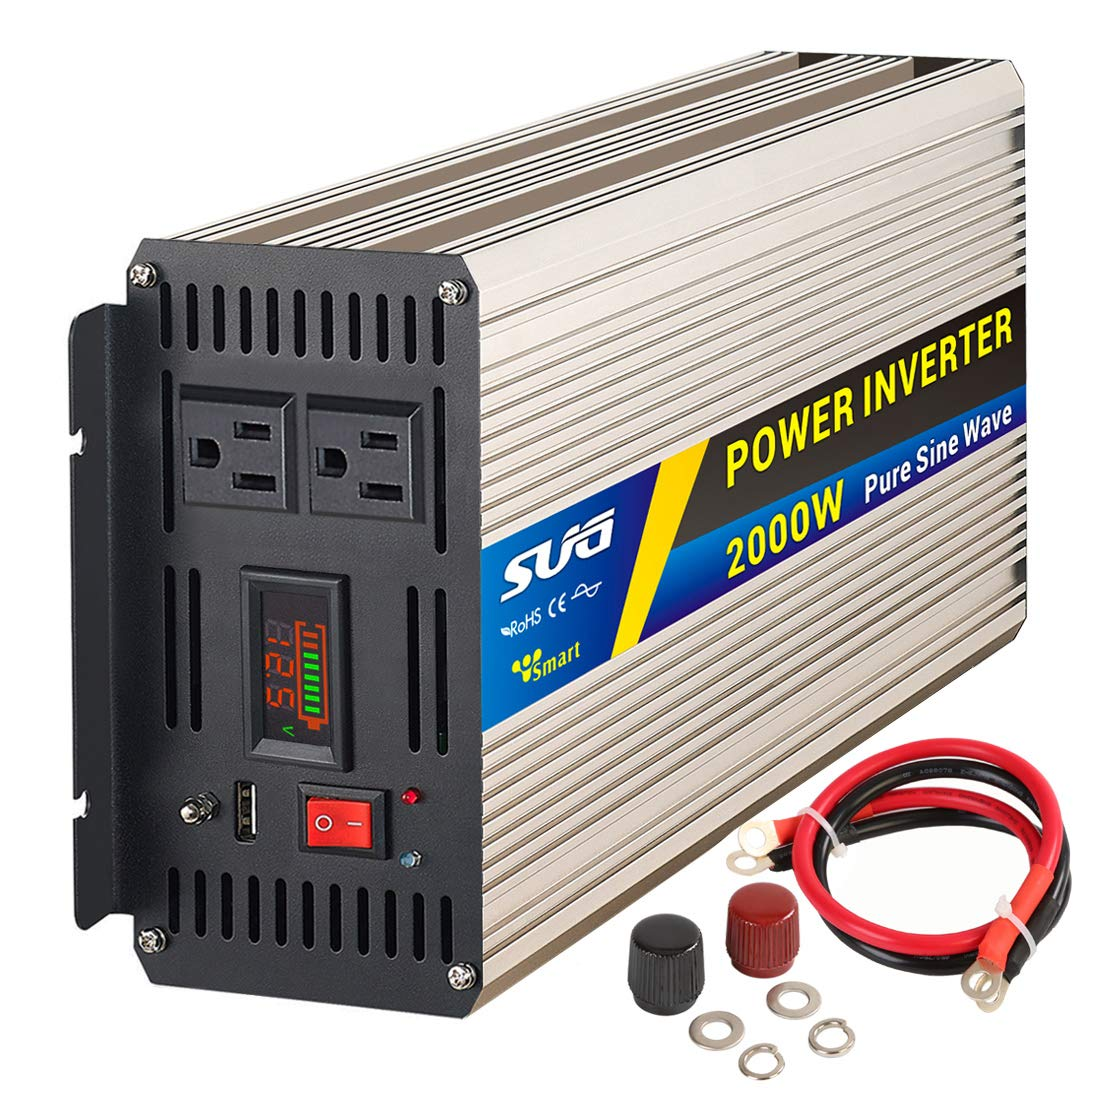 Sug 2000W Peak 4000W Power Inverter Pure Sine Wave DC 12V to AC 110V 120V Converter Back up Power Supply for RV, Home, Car Use